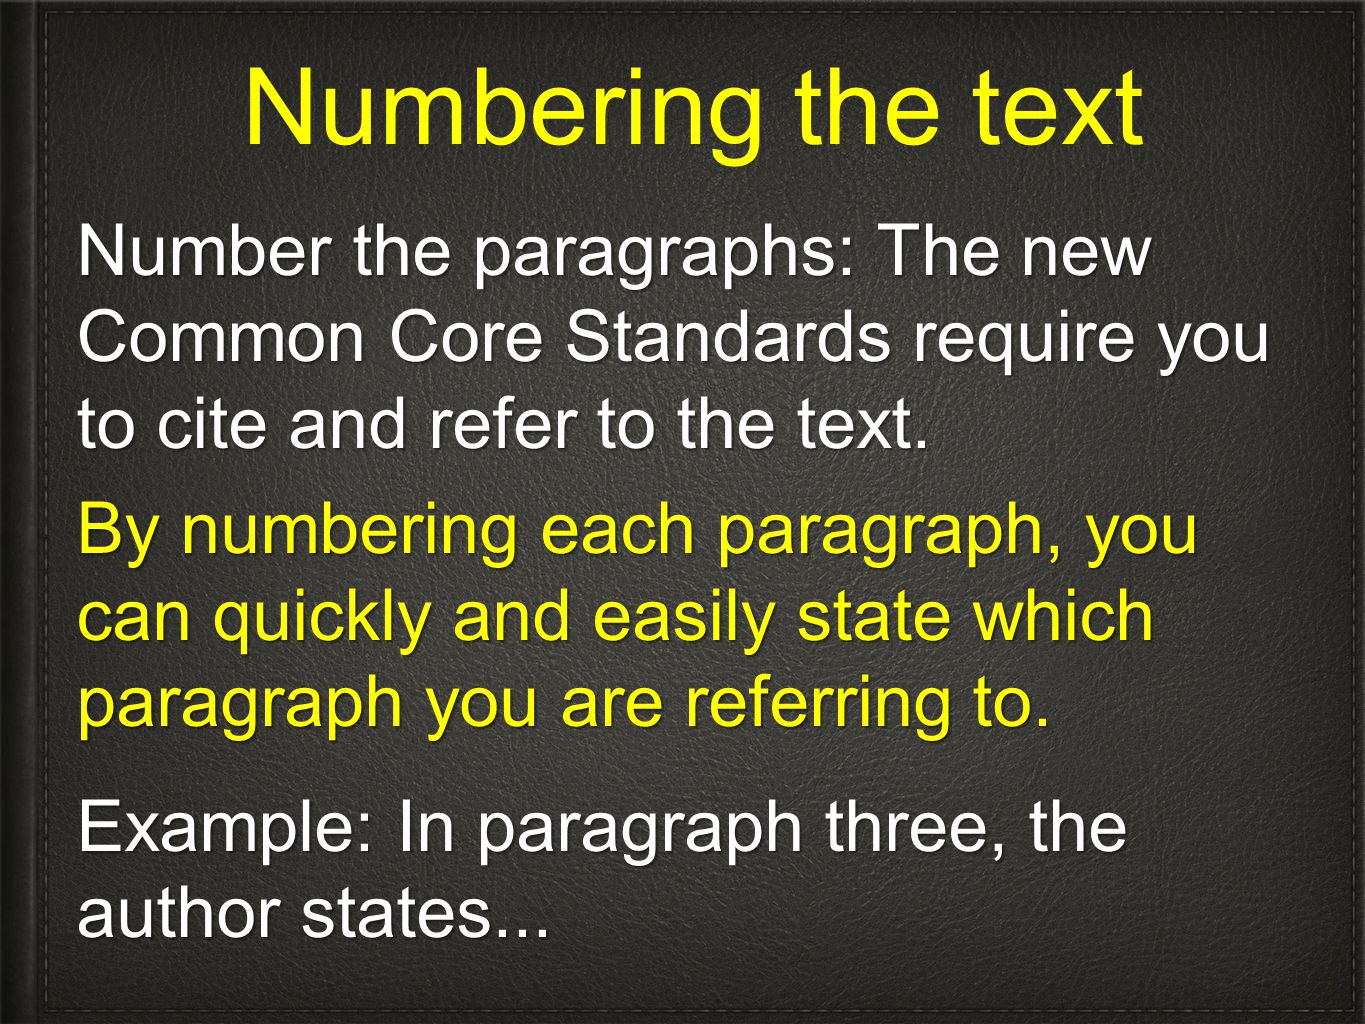 Numbering the text